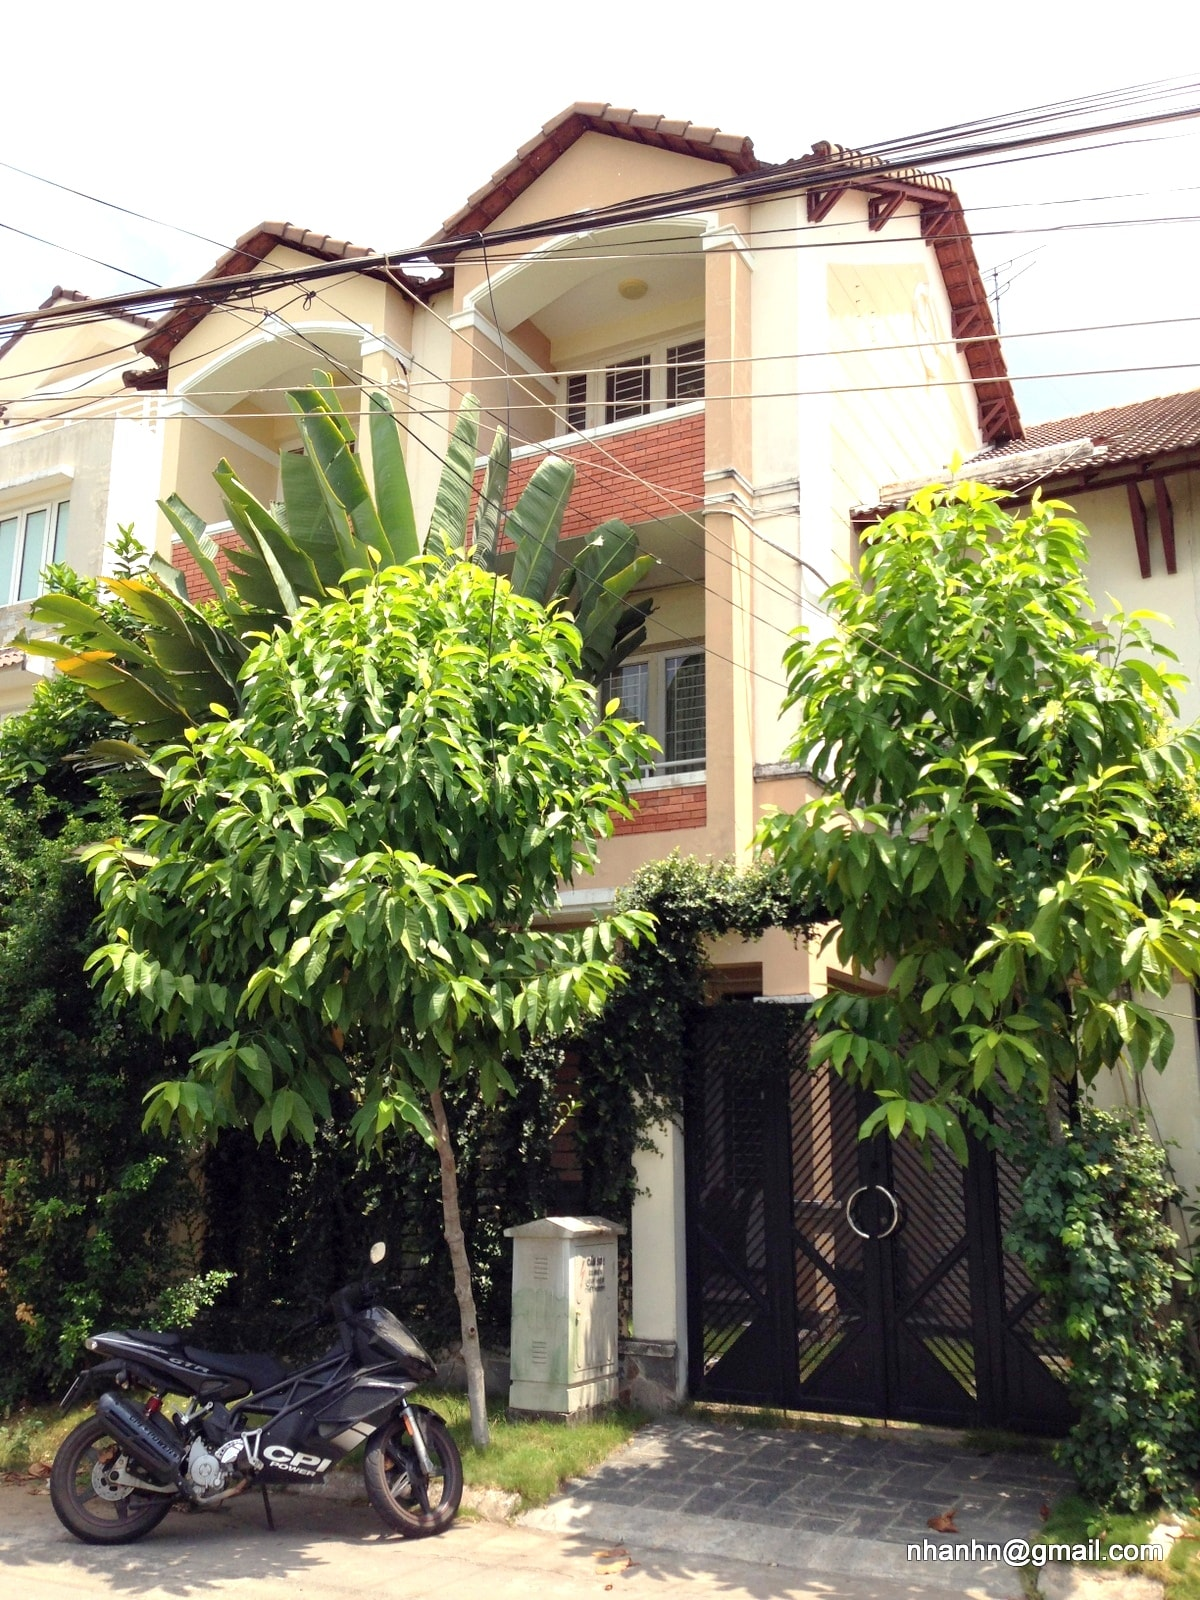 The 3-storey townhouse with the small garden in front, security guards are 10 meters away